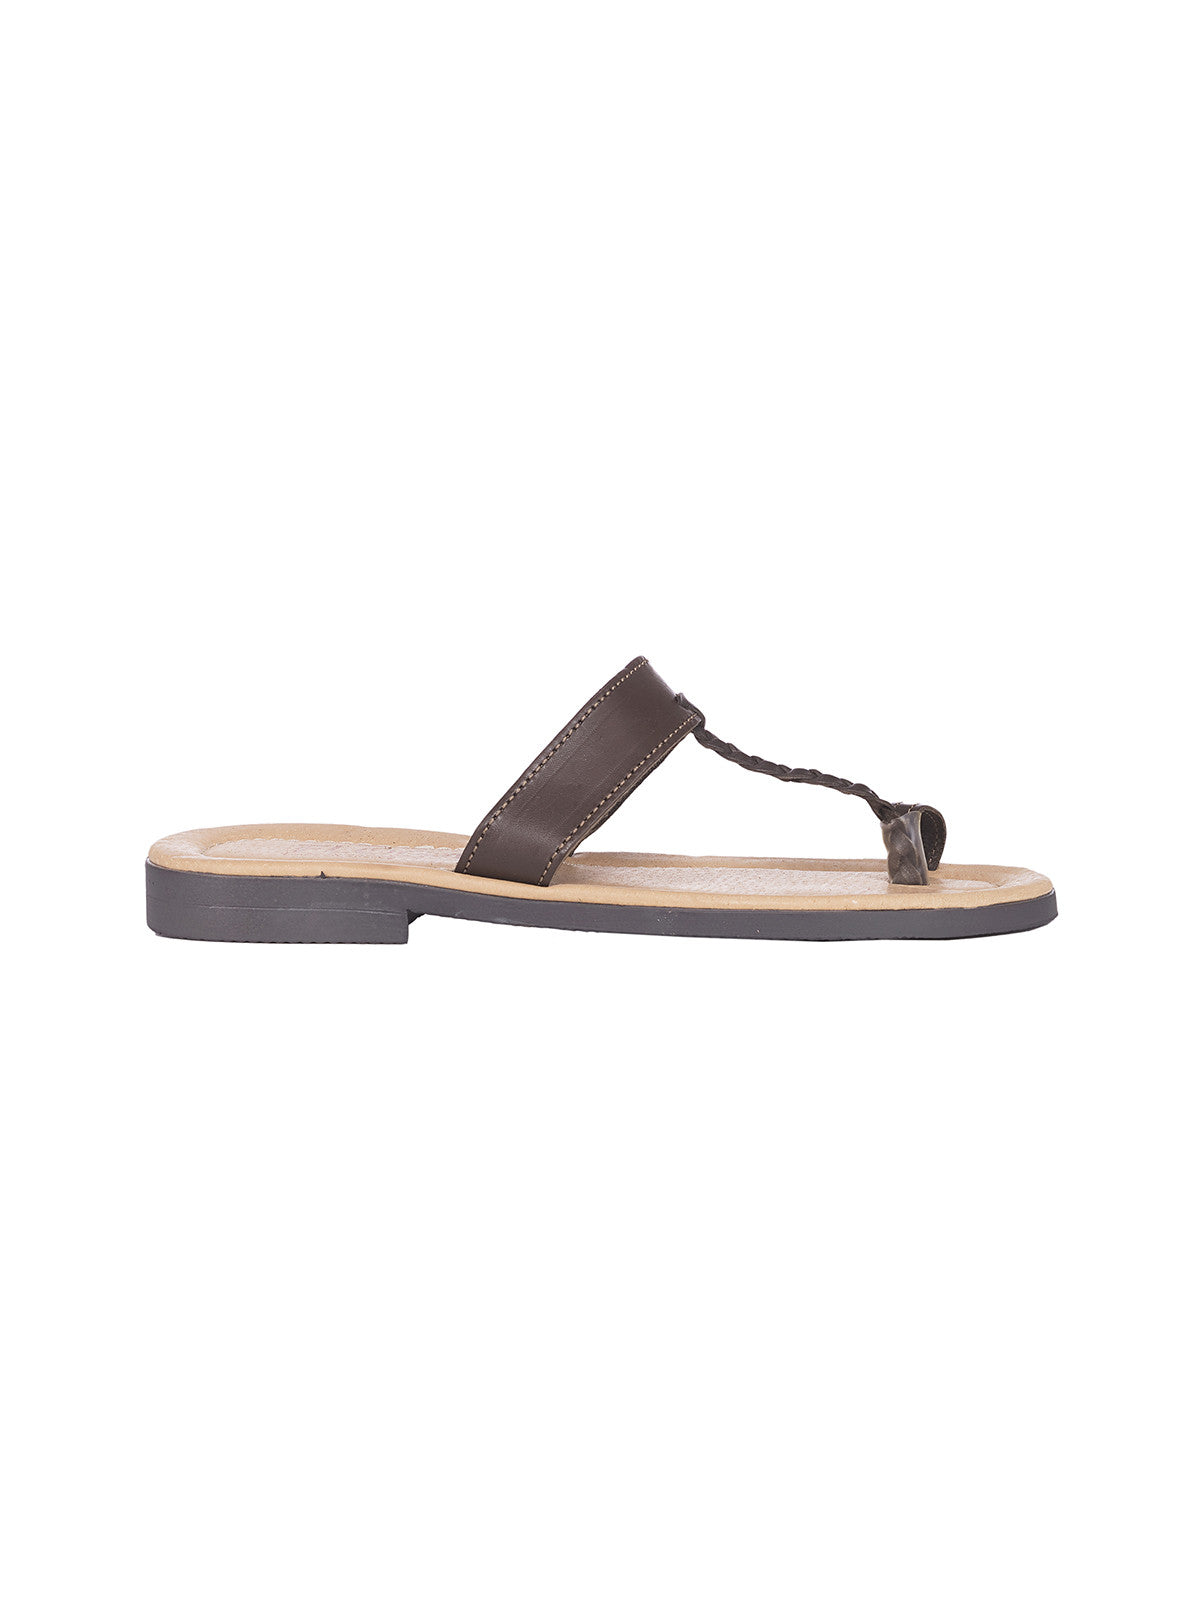 Ambrosia Greek Sandals